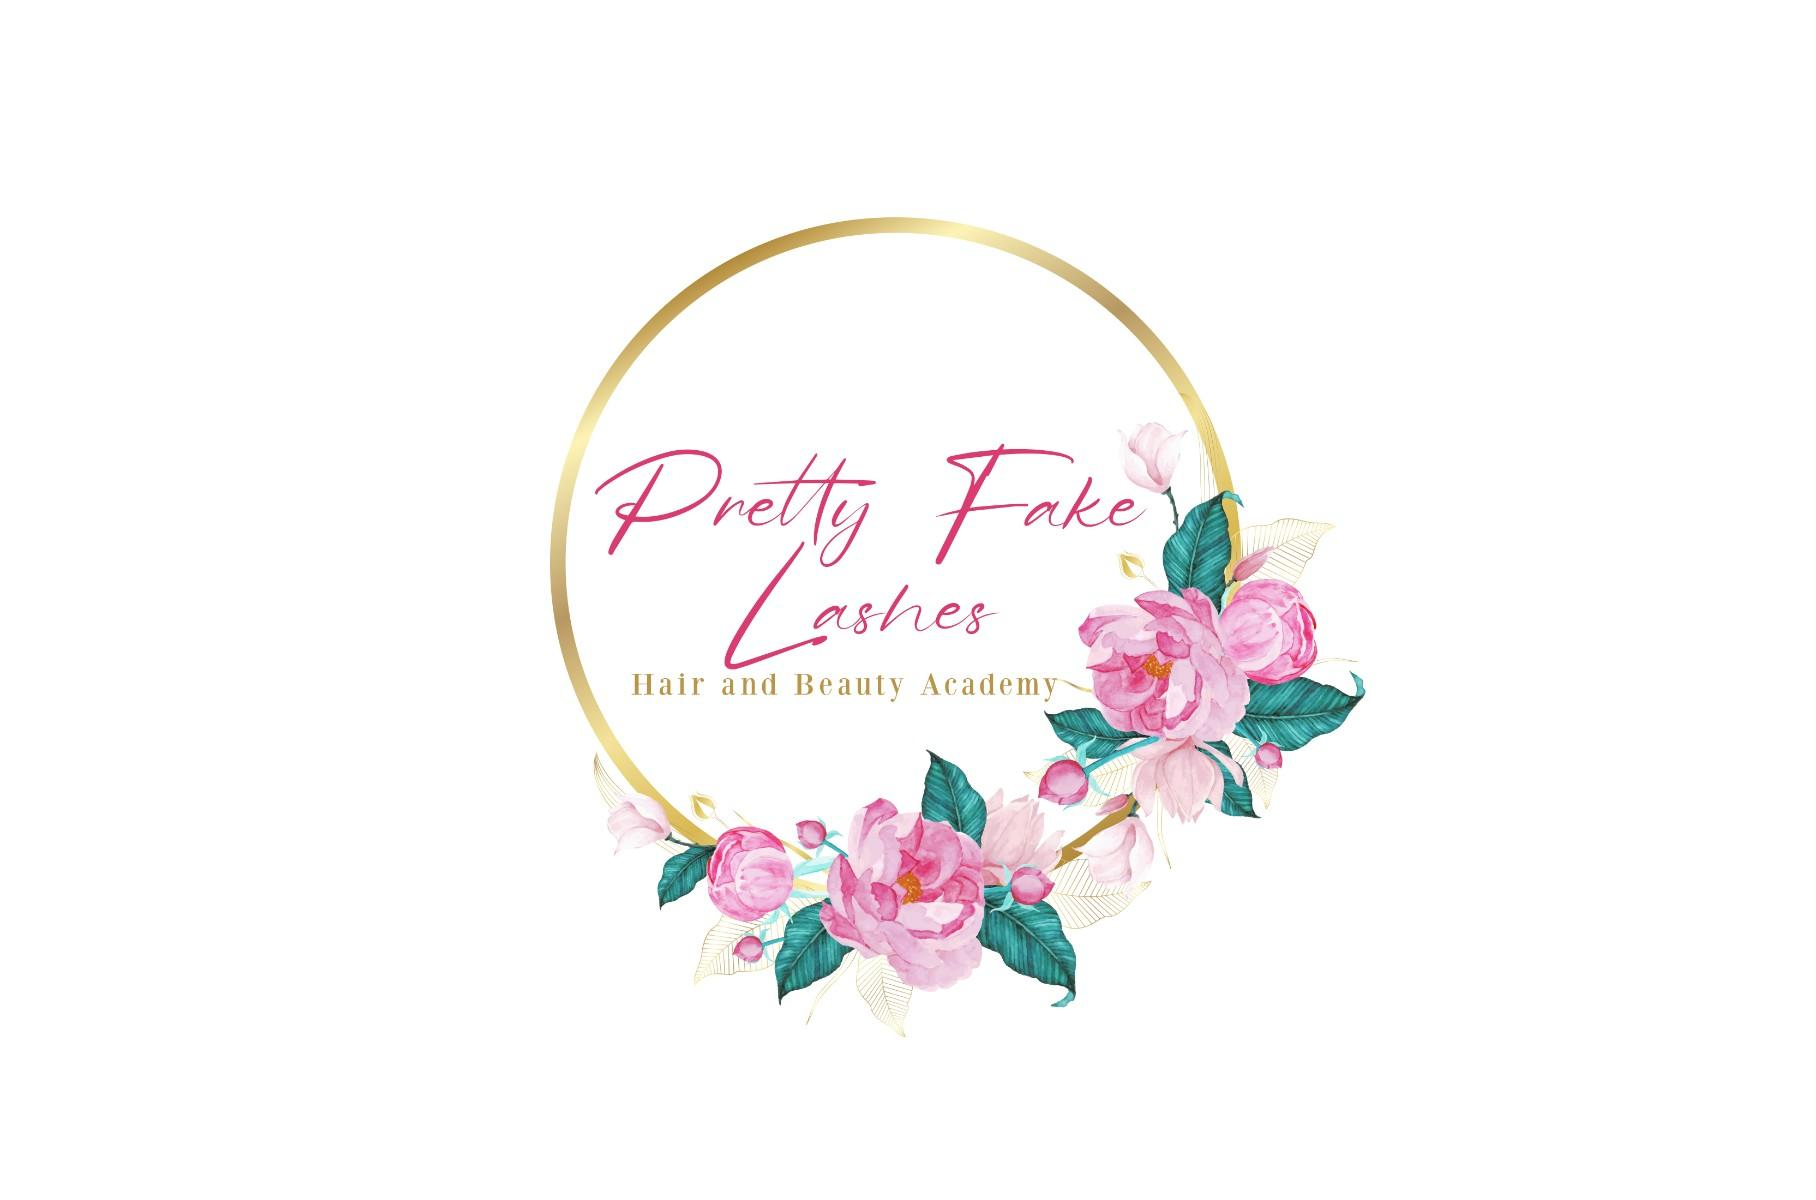 Pretty Fake Lashes logo